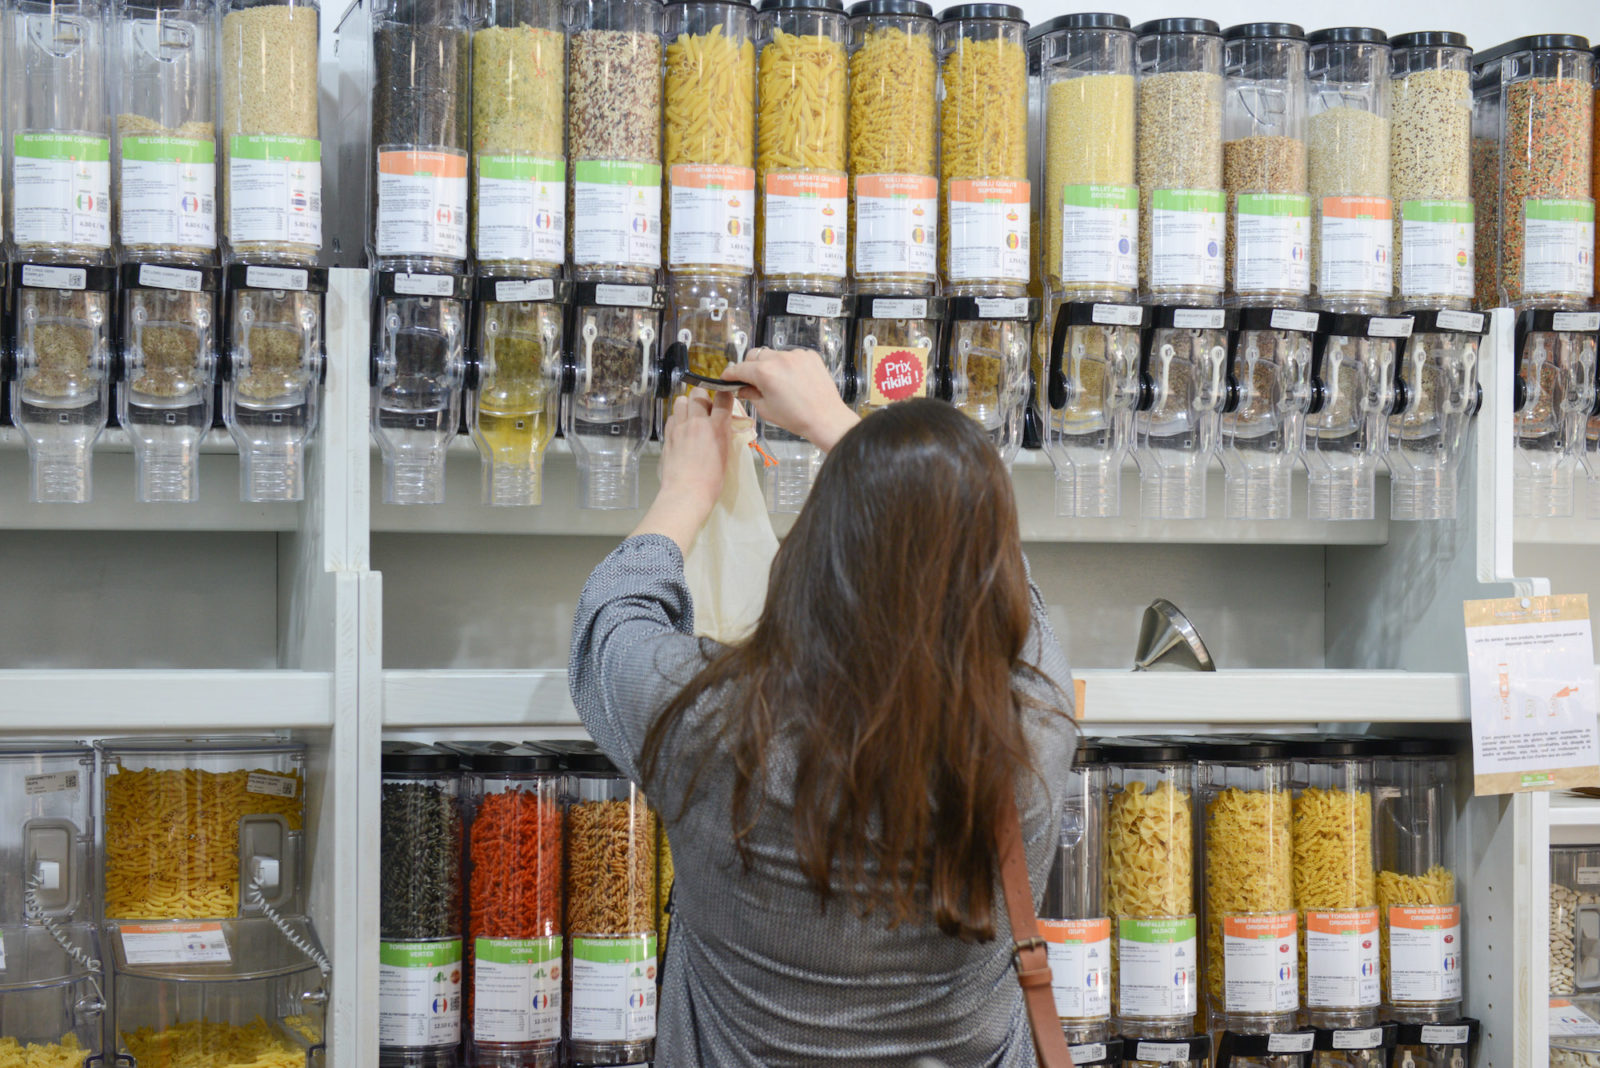 For zero-waste shopping in Paris, head to Day by Day, like this woman helping herself to pasta in bulk.